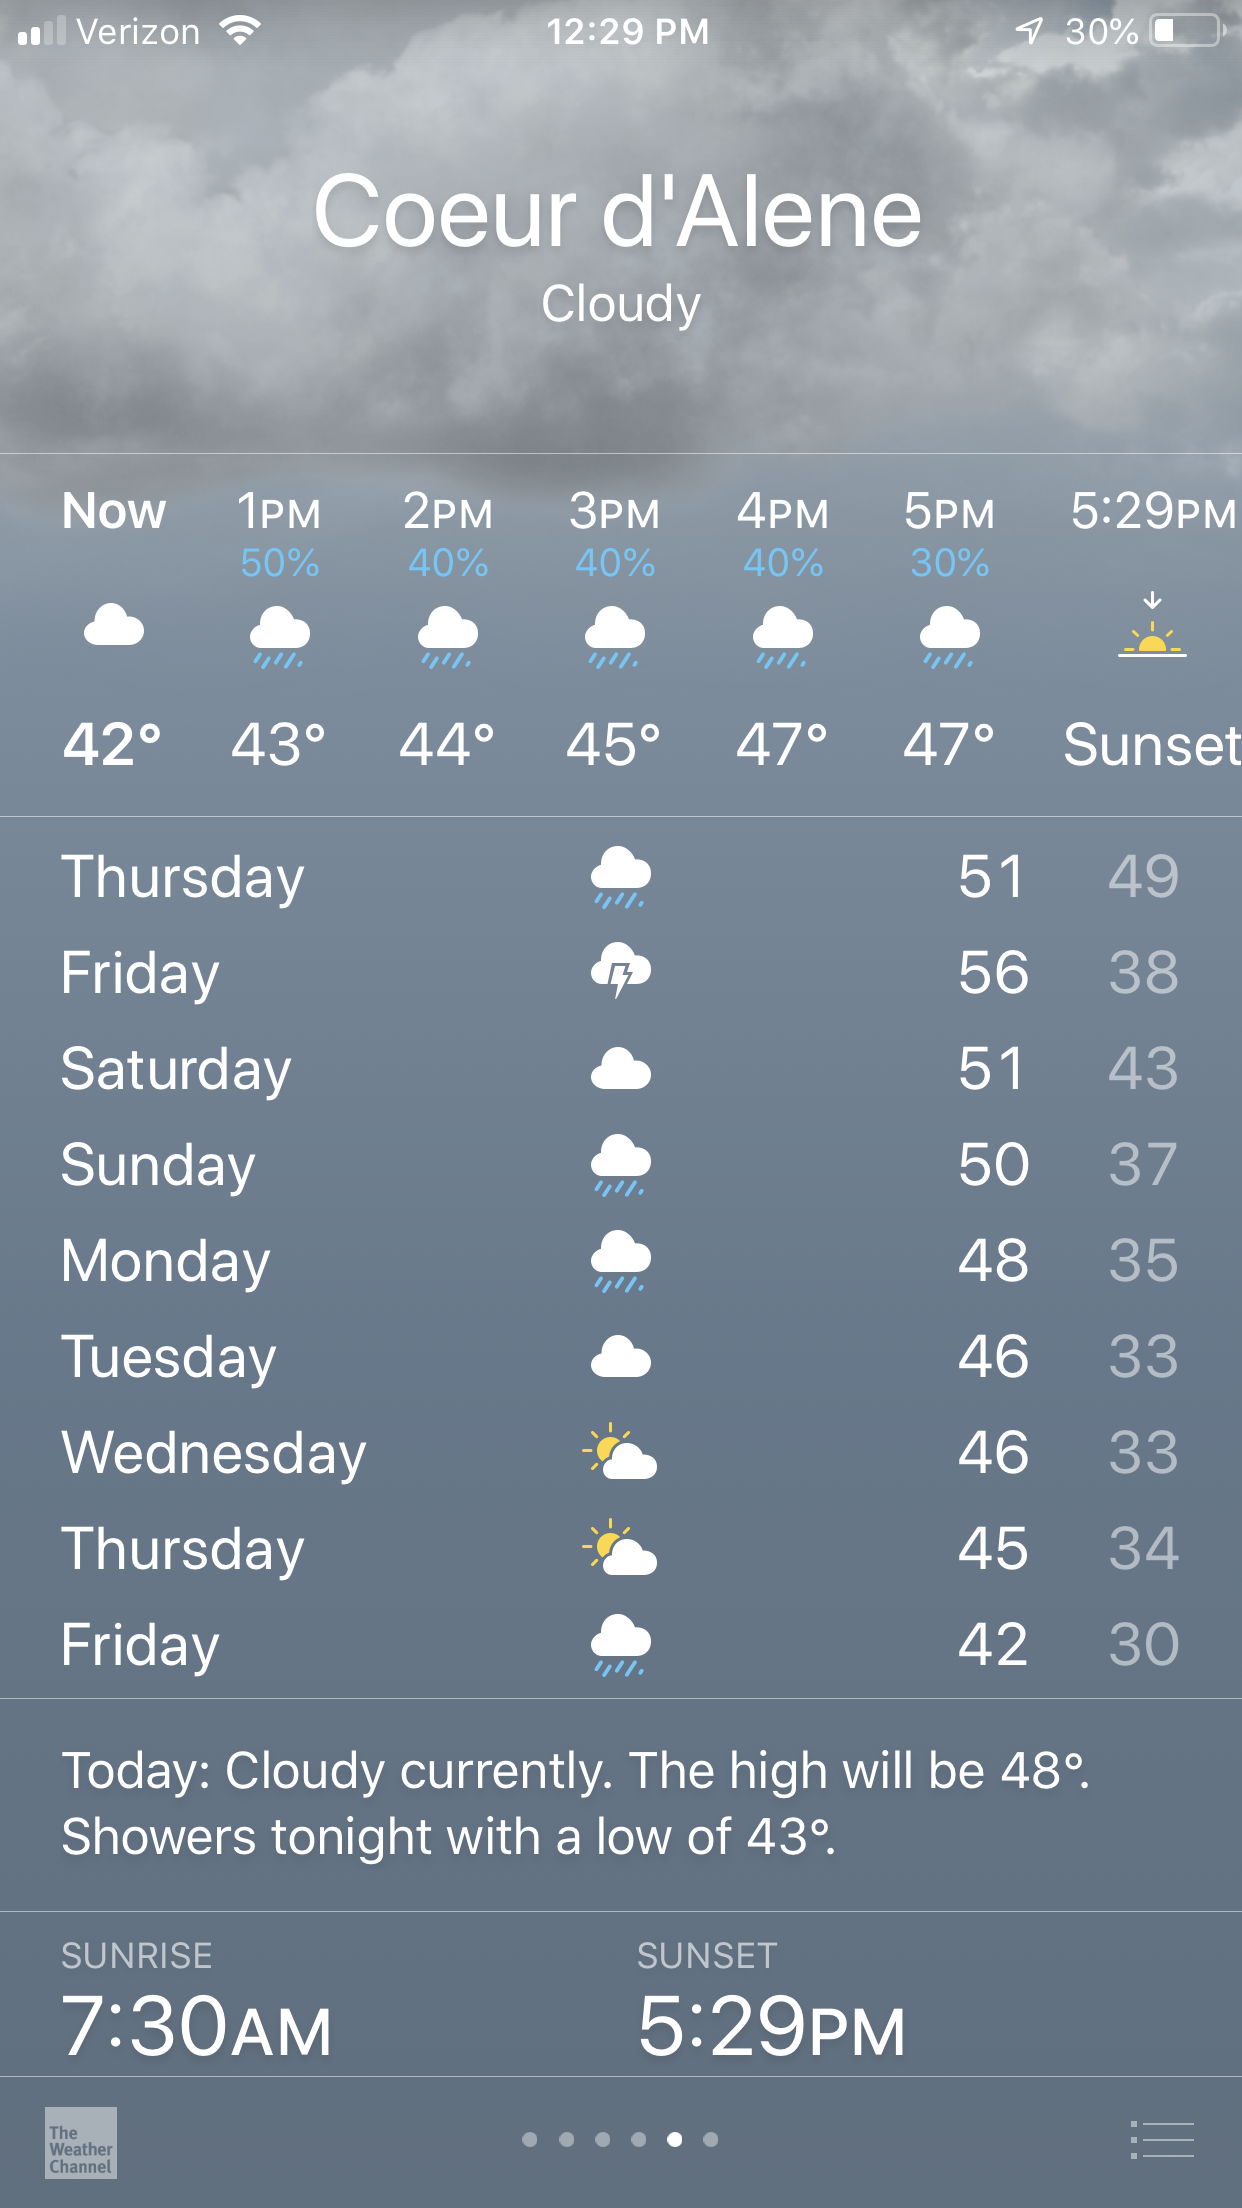 - Weather Report for my upcoming trip.